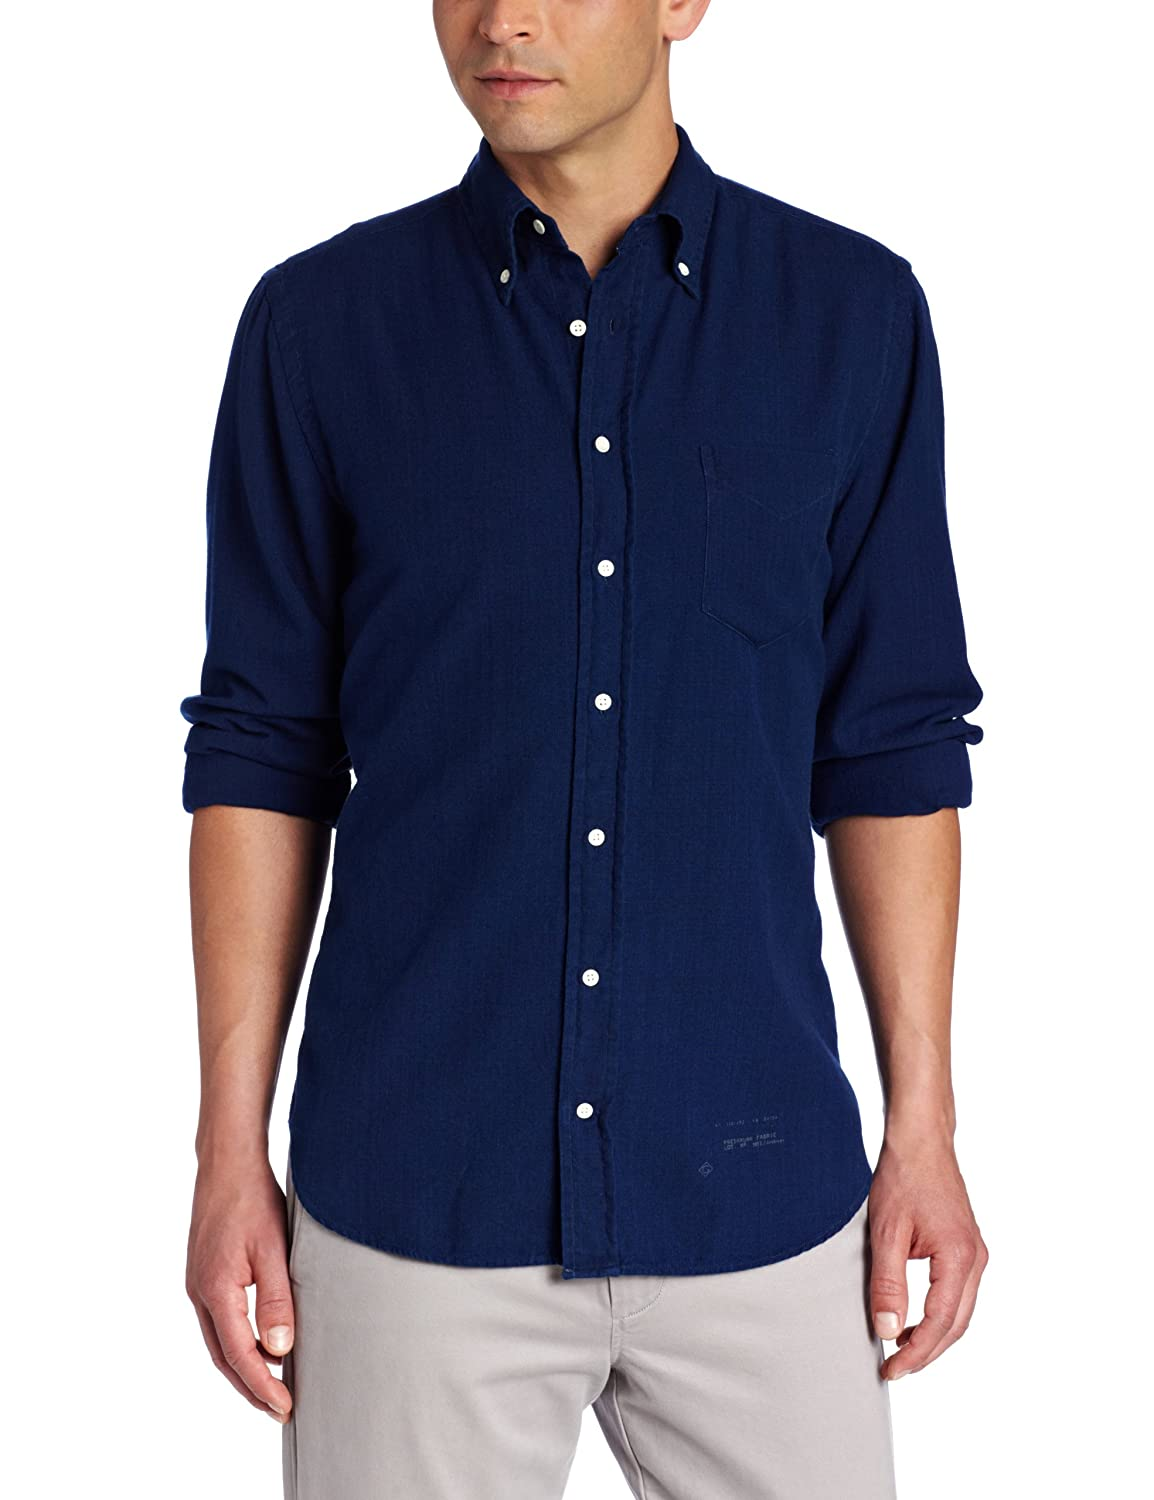 GANT Rugger Men's Oxford HOBD Shirt